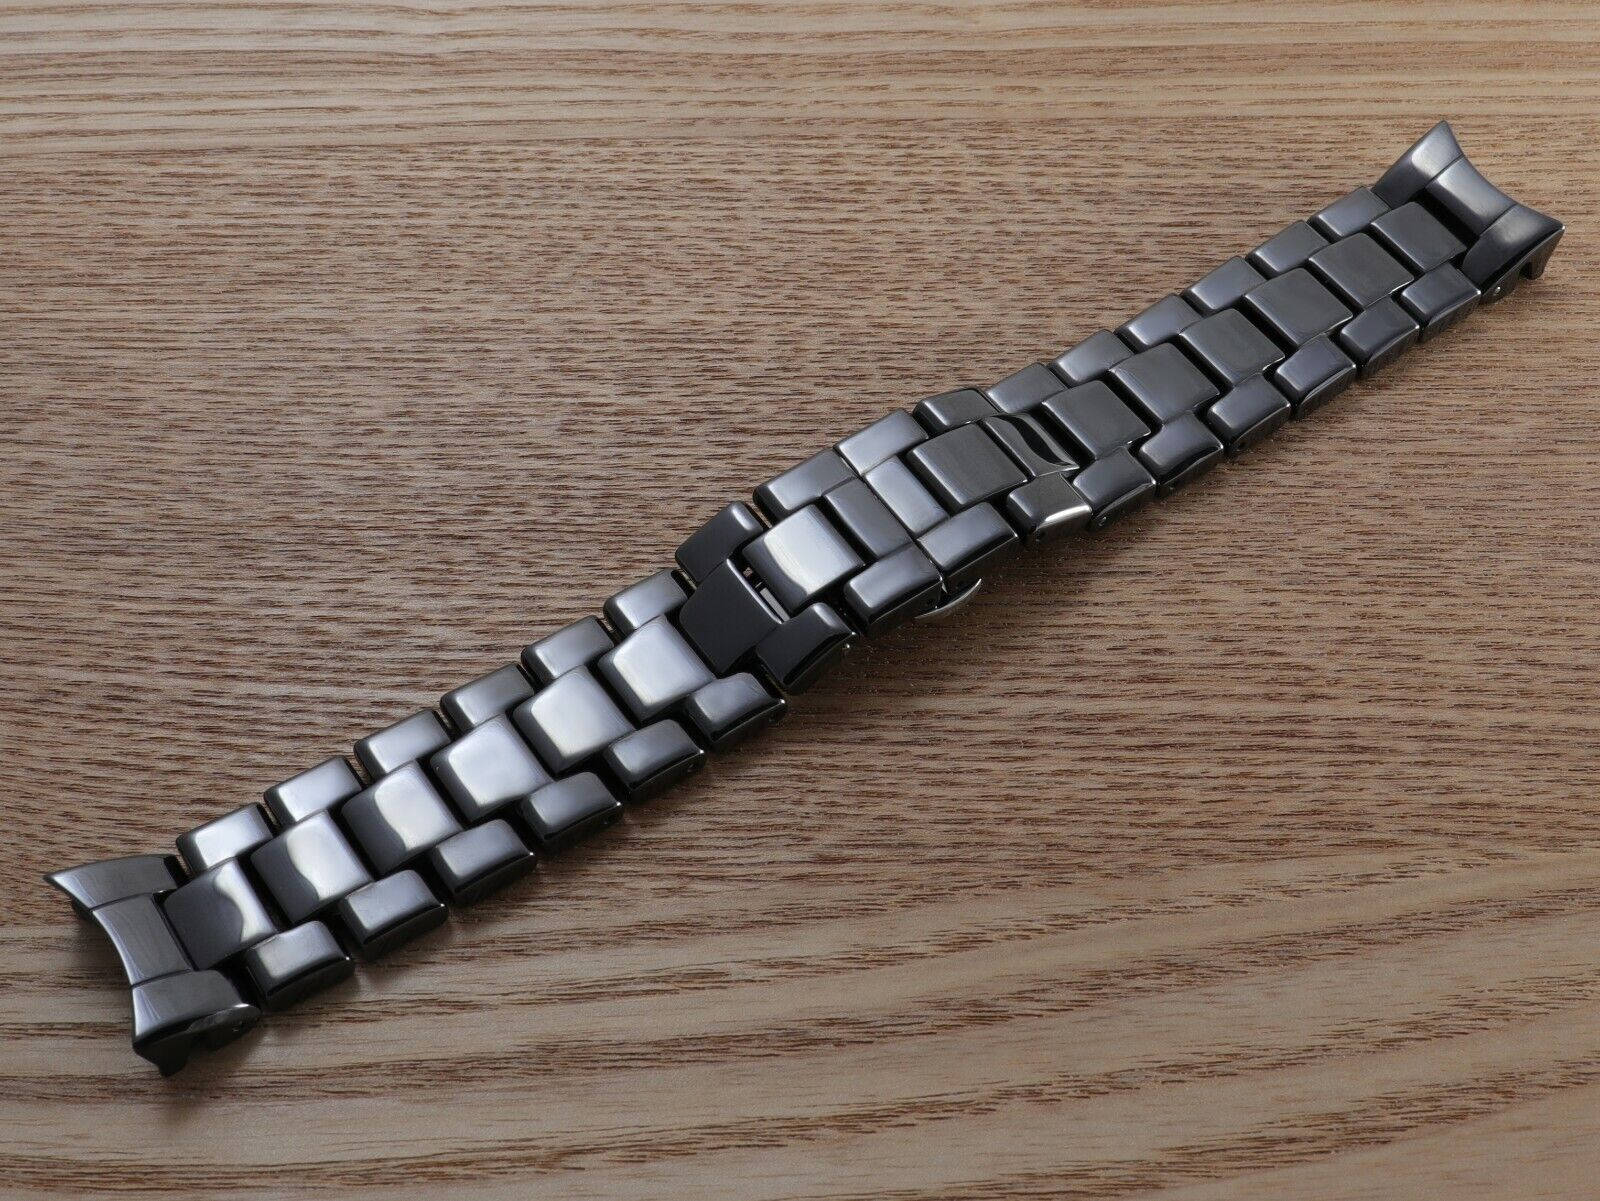 22 mm jenuine rubber EMPORIO ARMANI black watch band strap+ deployment clasp